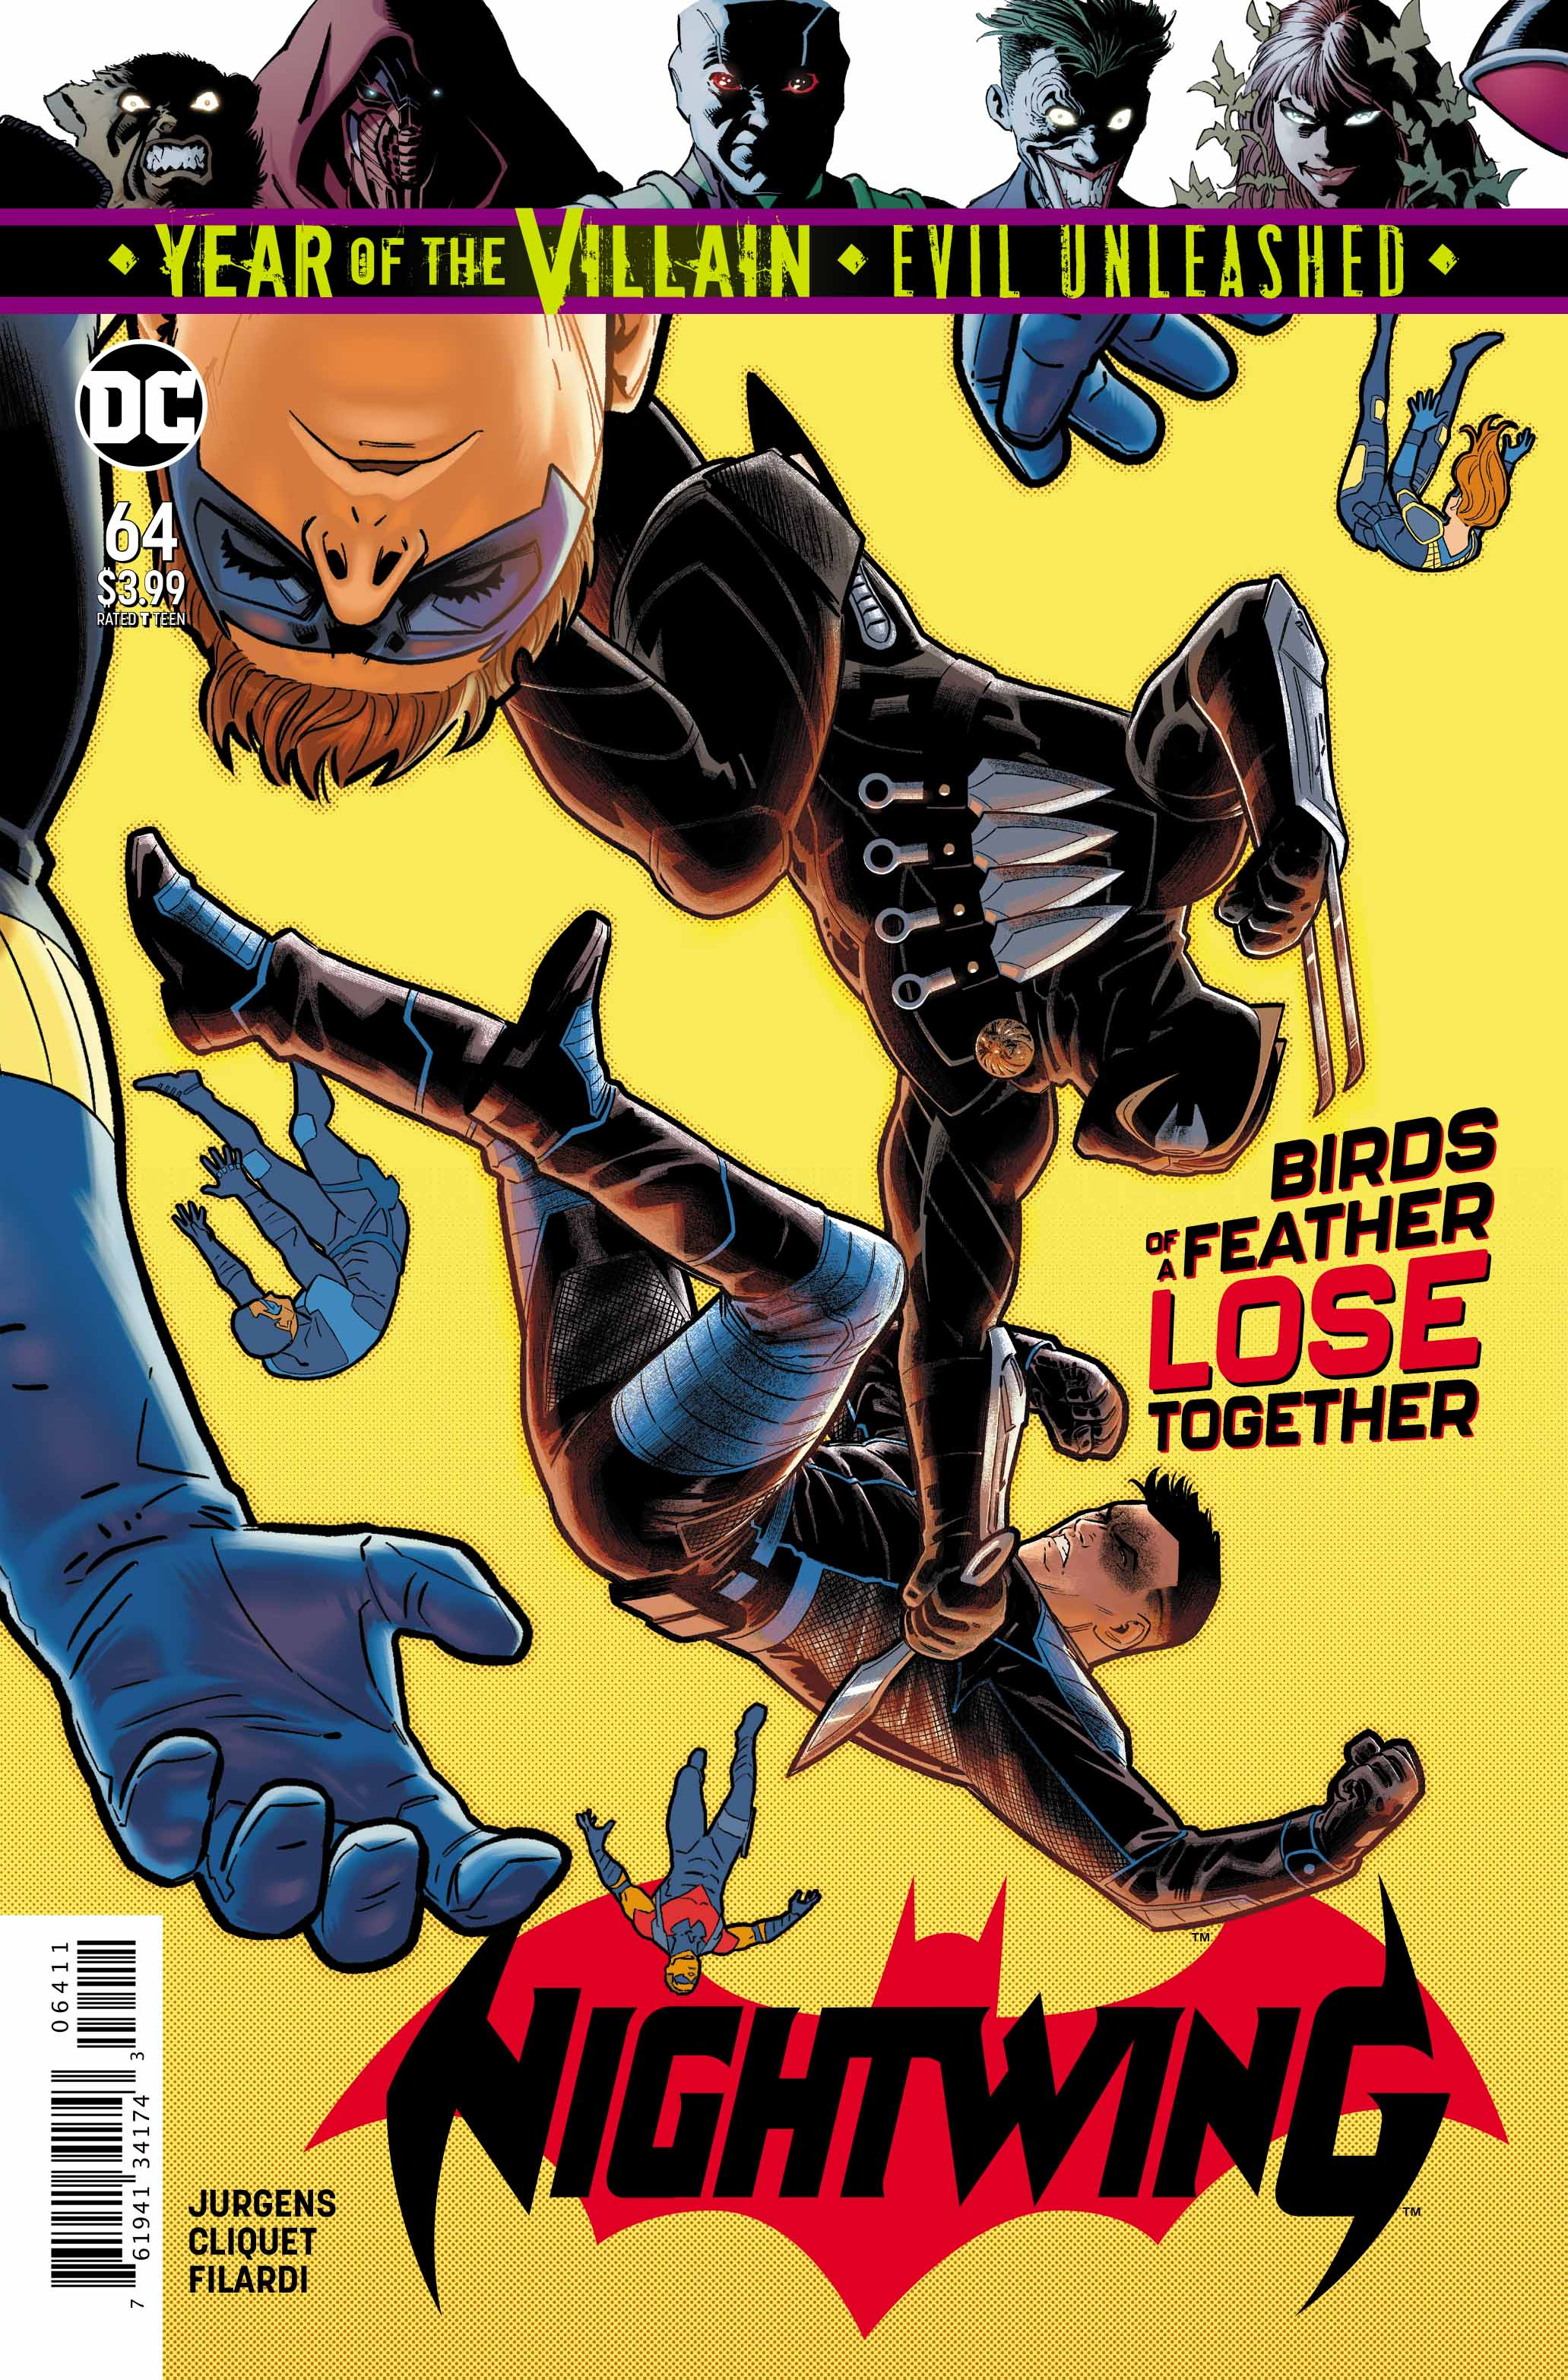 Nightwing #64 YOTV Cover With Lettering